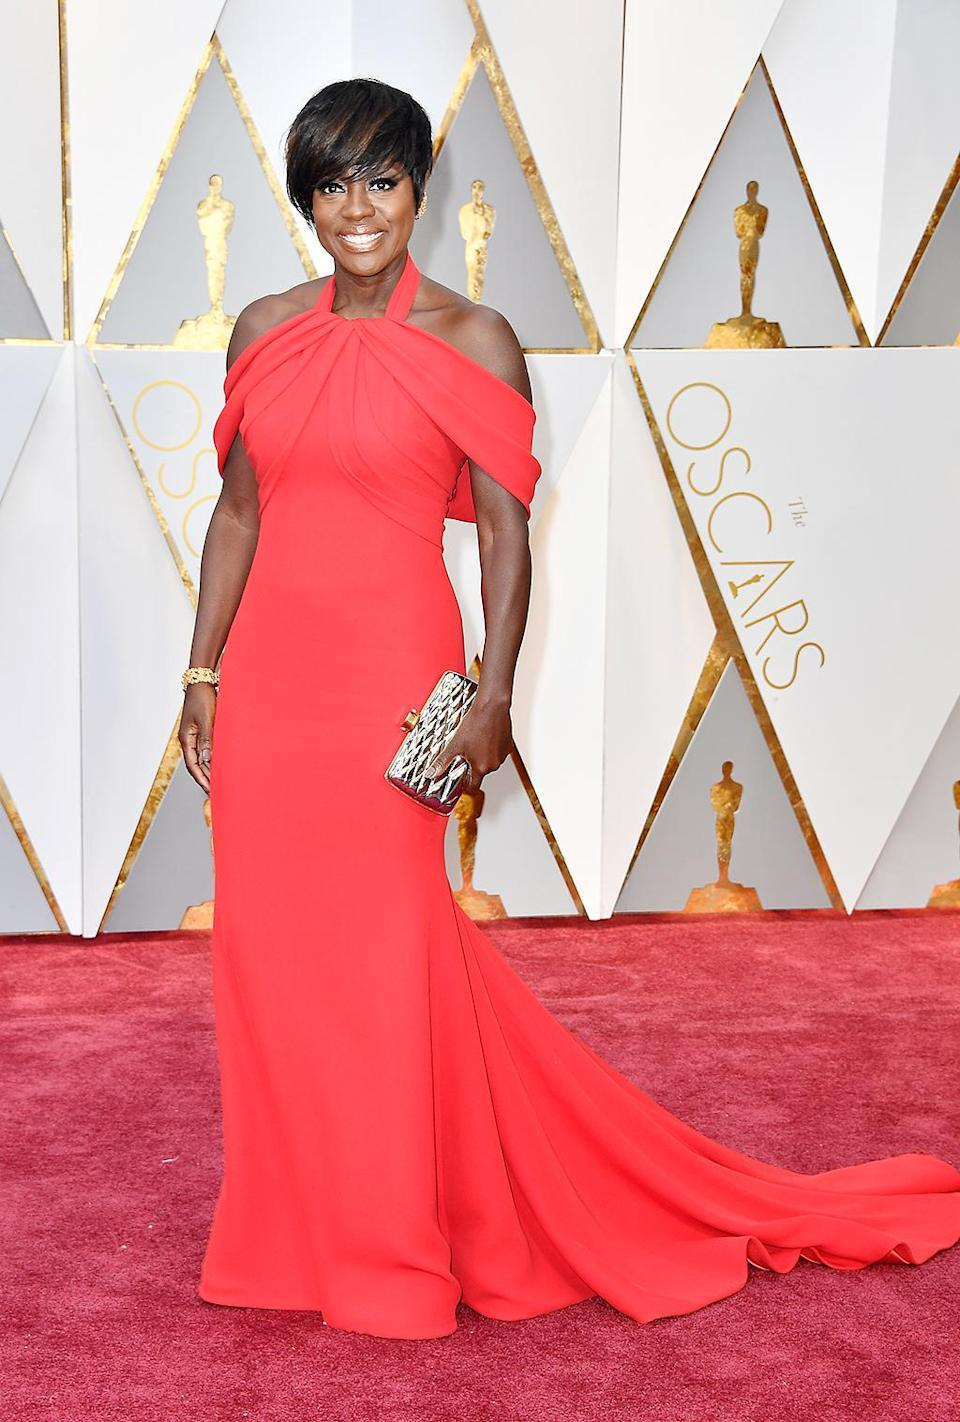 """<p>Viola Davis attends the 89th Annual Academy Awards at Hollywood & Highland Center on February 26, 2017 in Hollywood, California. (Photo by Frazer Harrison/Getty Images)<br><br><a href=""""https://www.yahoo.com/style/oscars-2017-vote-for-the-best-and-worst-dressed-225105125.html"""" data-ylk=""""slk:Go here to vote for best and worst dressed.;outcm:mb_qualified_link;_E:mb_qualified_link;ct:story;"""" class=""""link rapid-noclick-resp yahoo-link"""">Go here to vote for best and worst dressed.</a> </p>"""